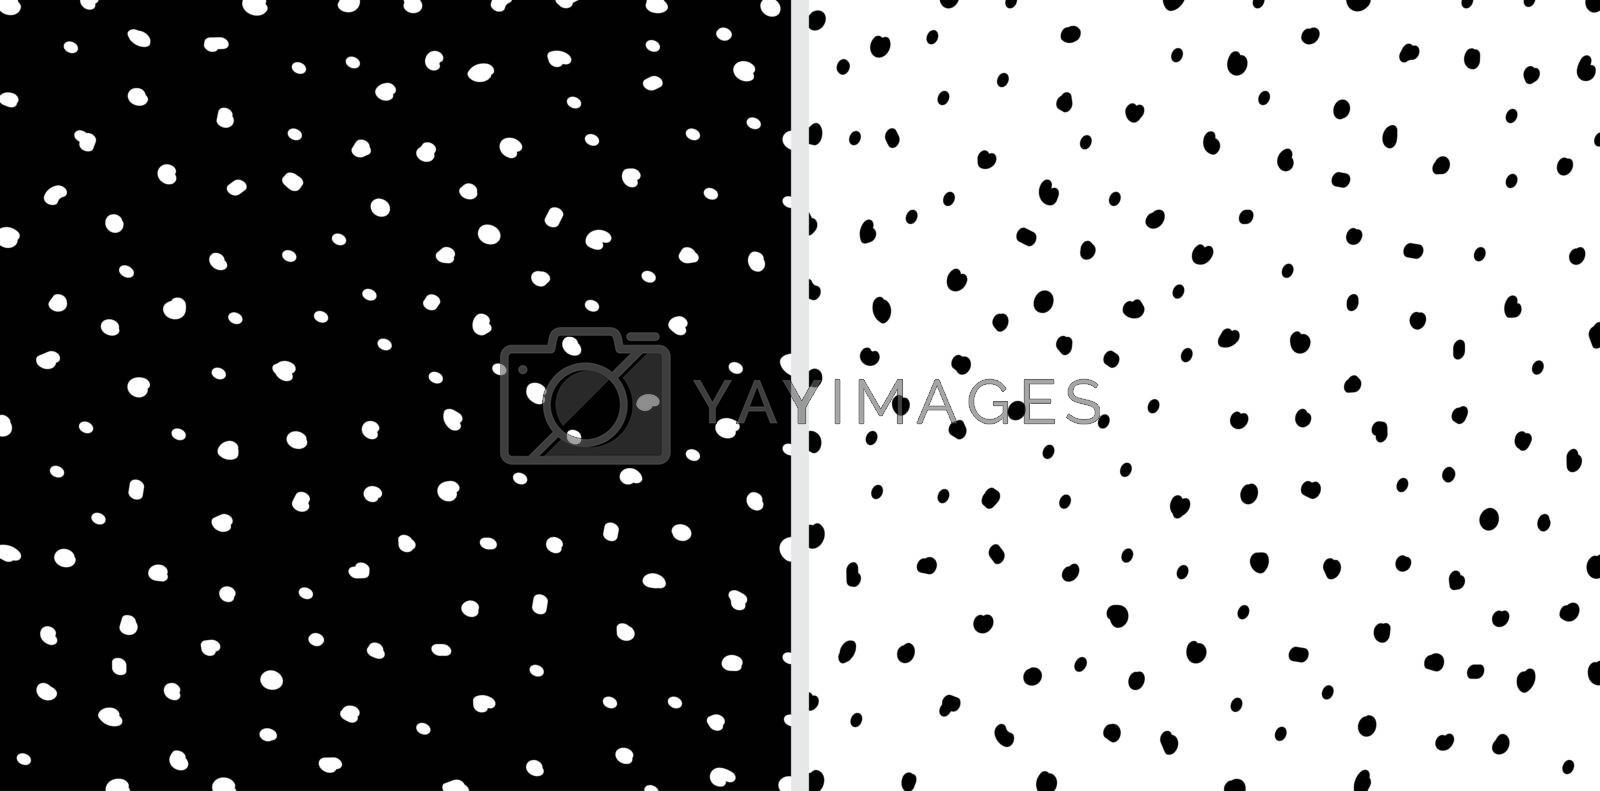 Set of Irregular black and white dots pattern background. Sketch by phochi